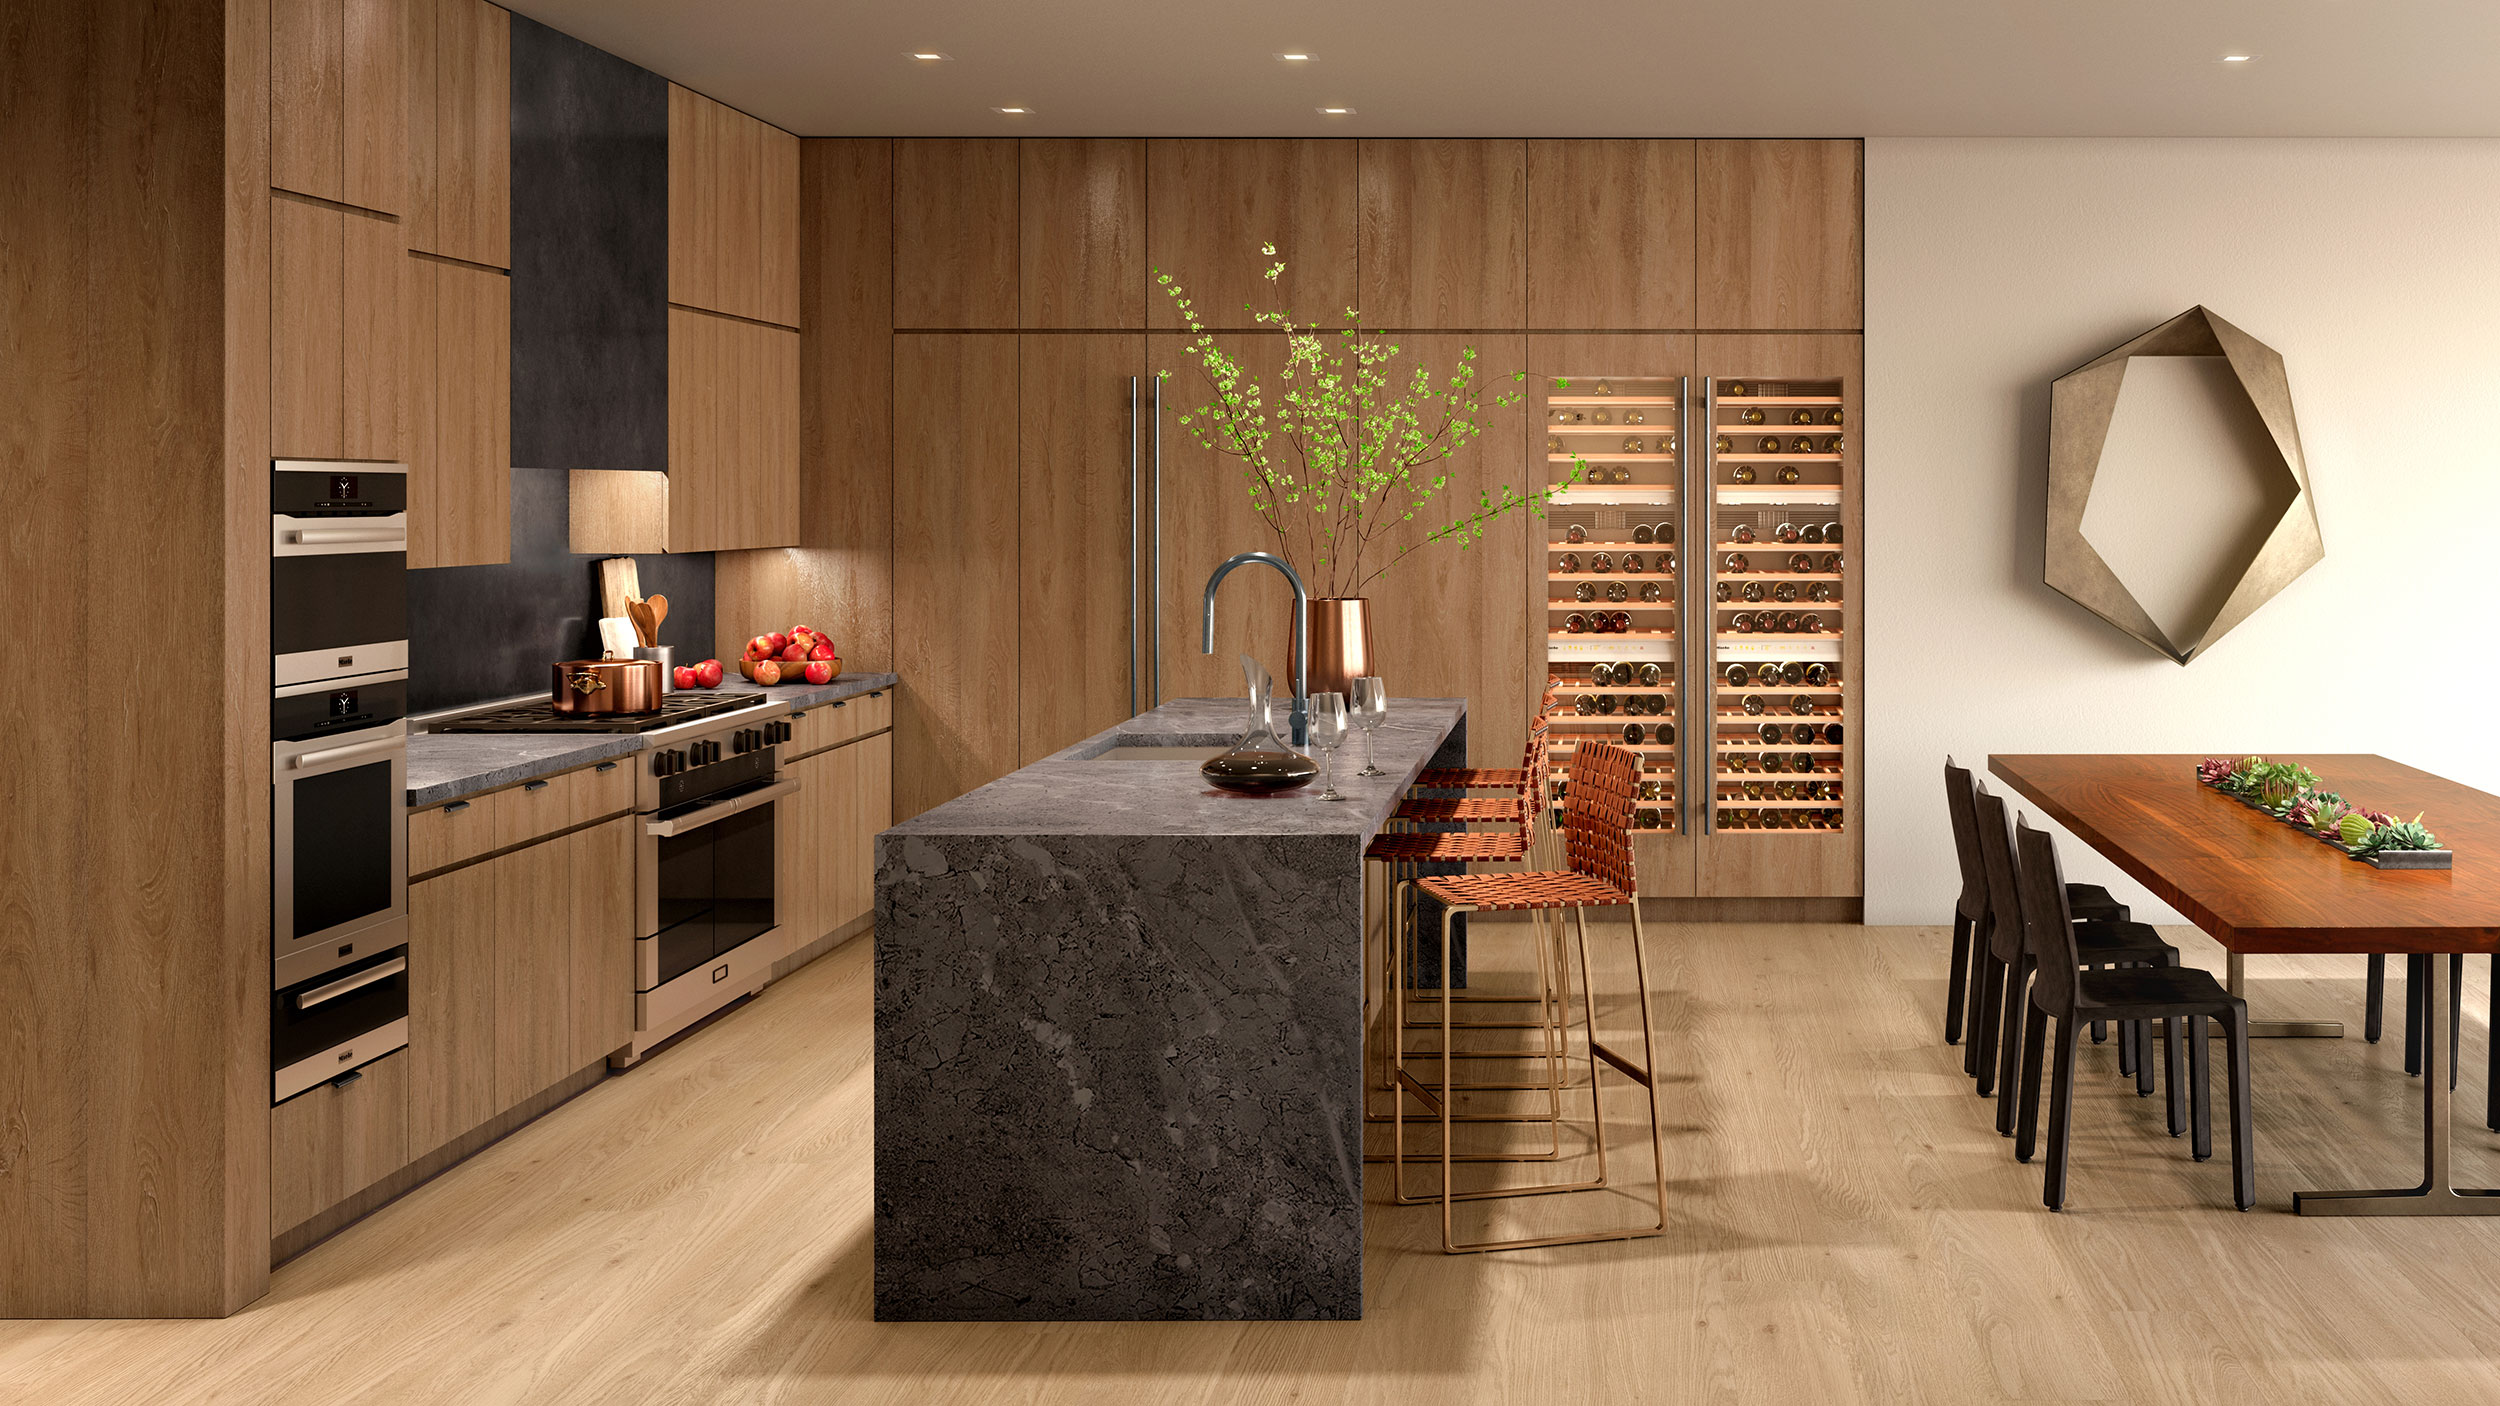 Kitchens feature marble countertops, a Miele appliance package, and wine refrigerators.